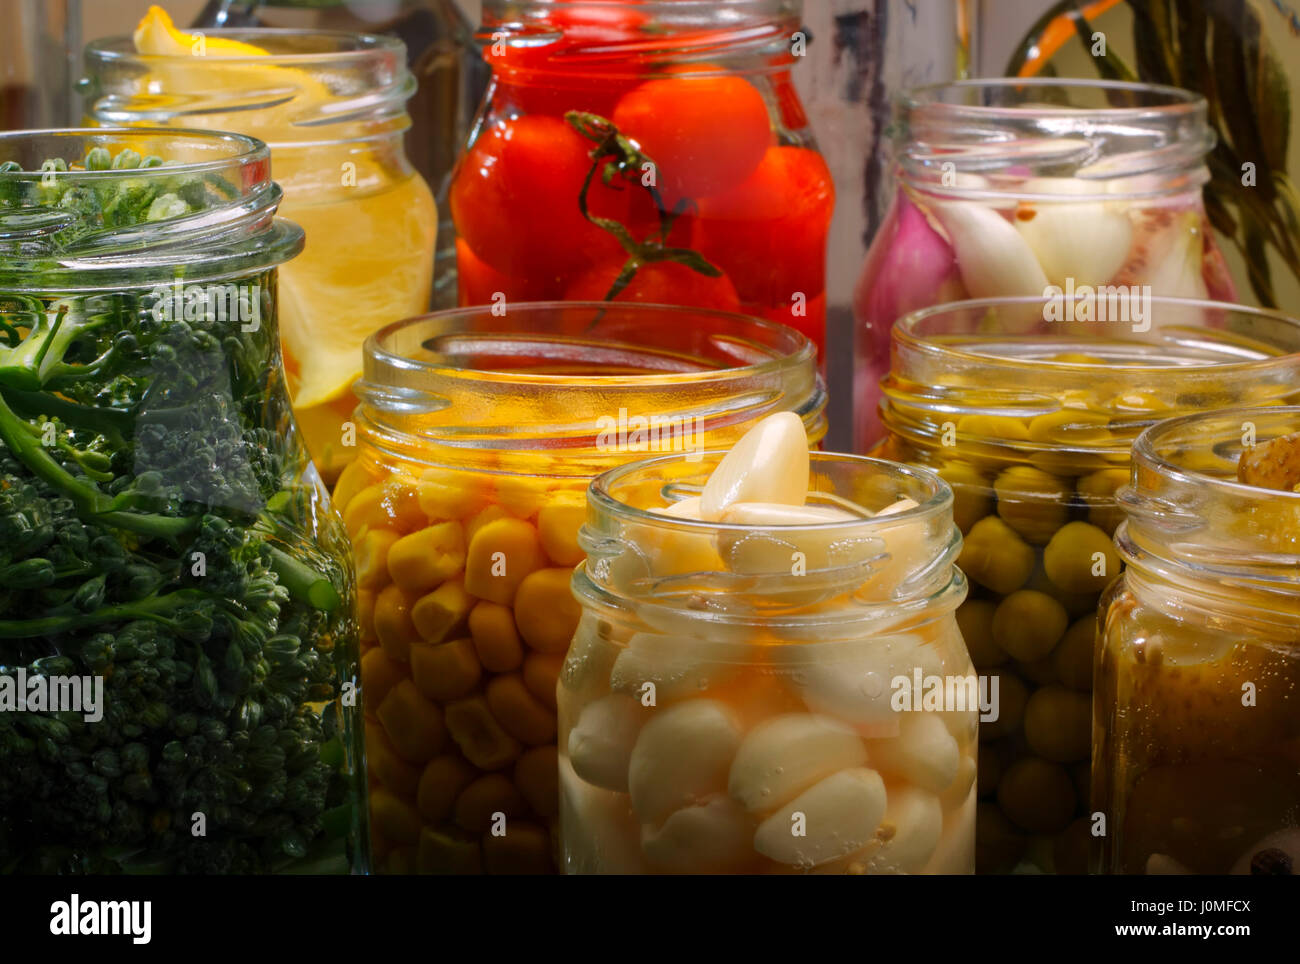 Opened jars in pantry with various preserved food Stock Photo